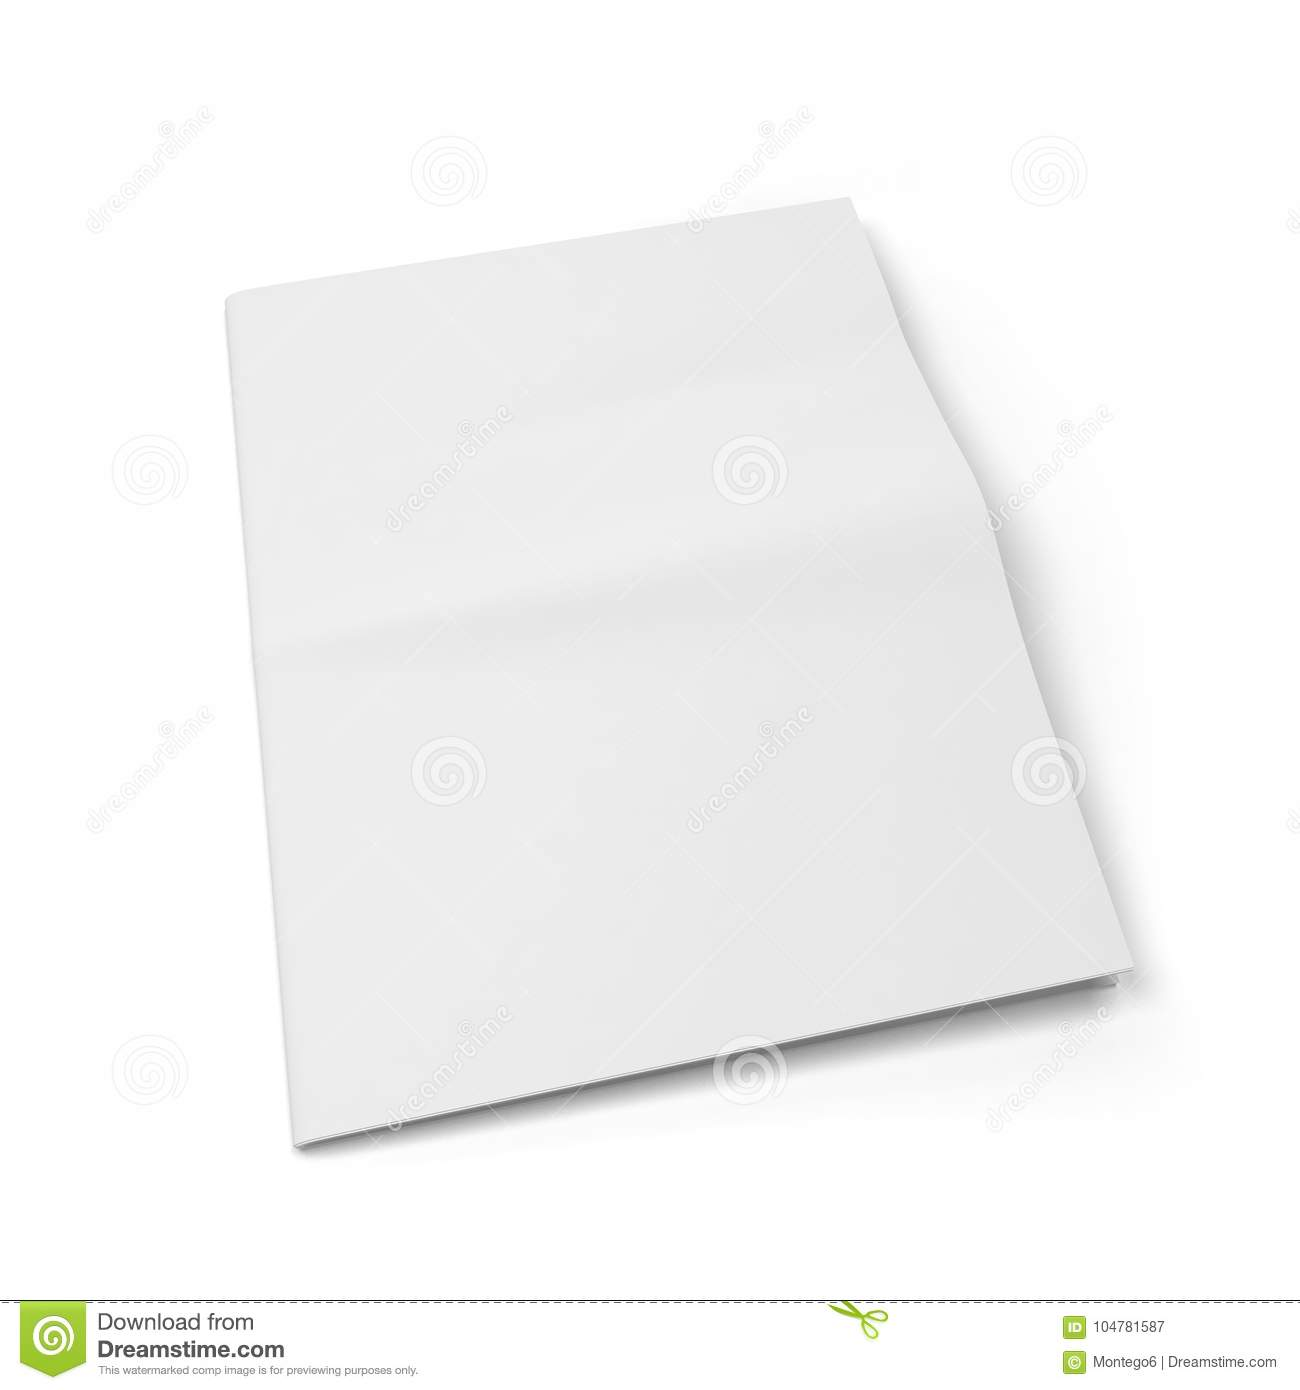 blank newspaper template stock illustration illustration of blank